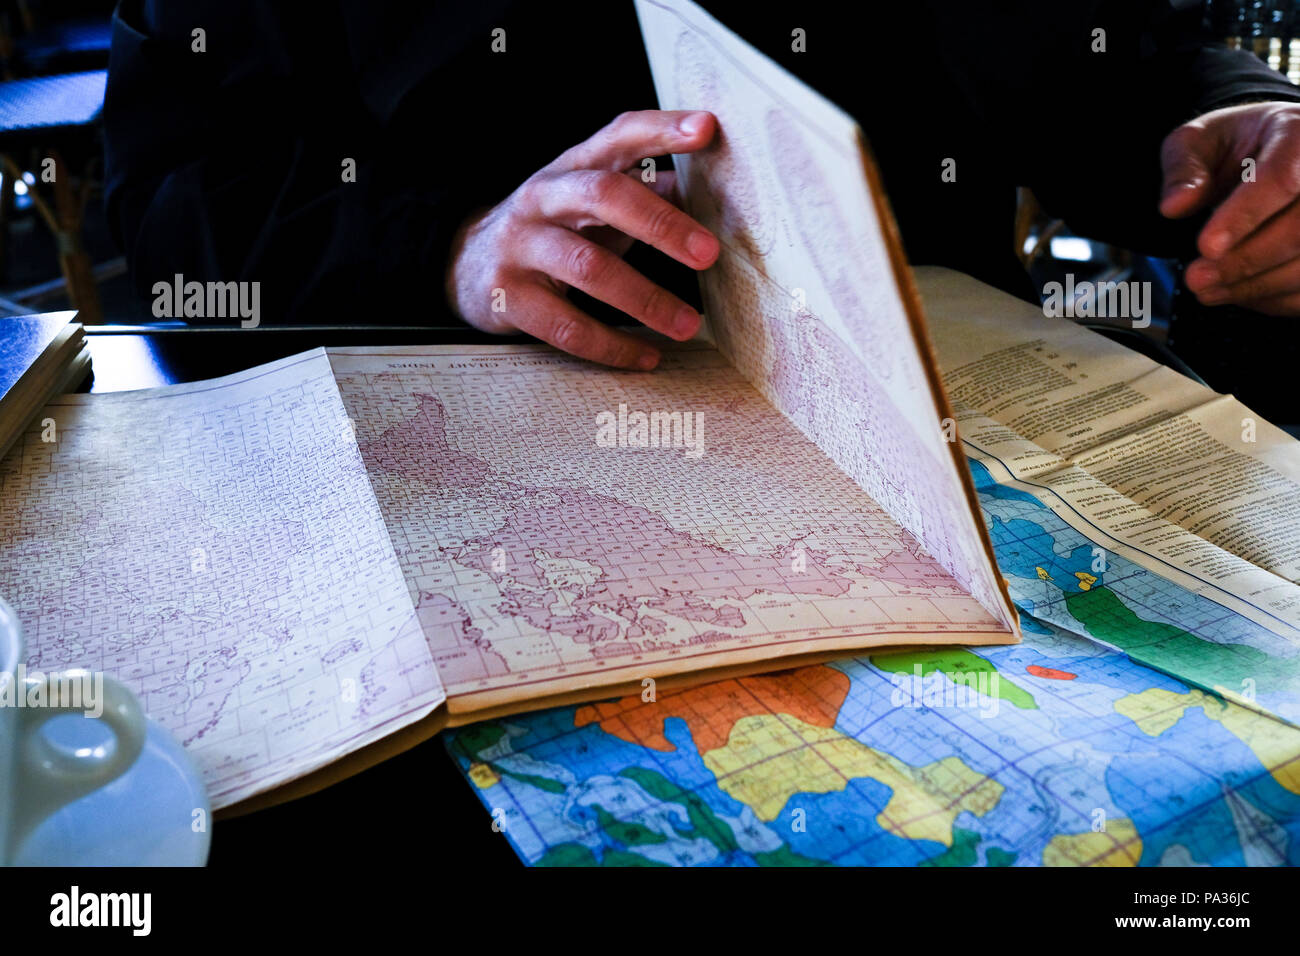 cropped view of adult man's hands opening up old printed map of world on kitchen table covered with other maps - Stock Image